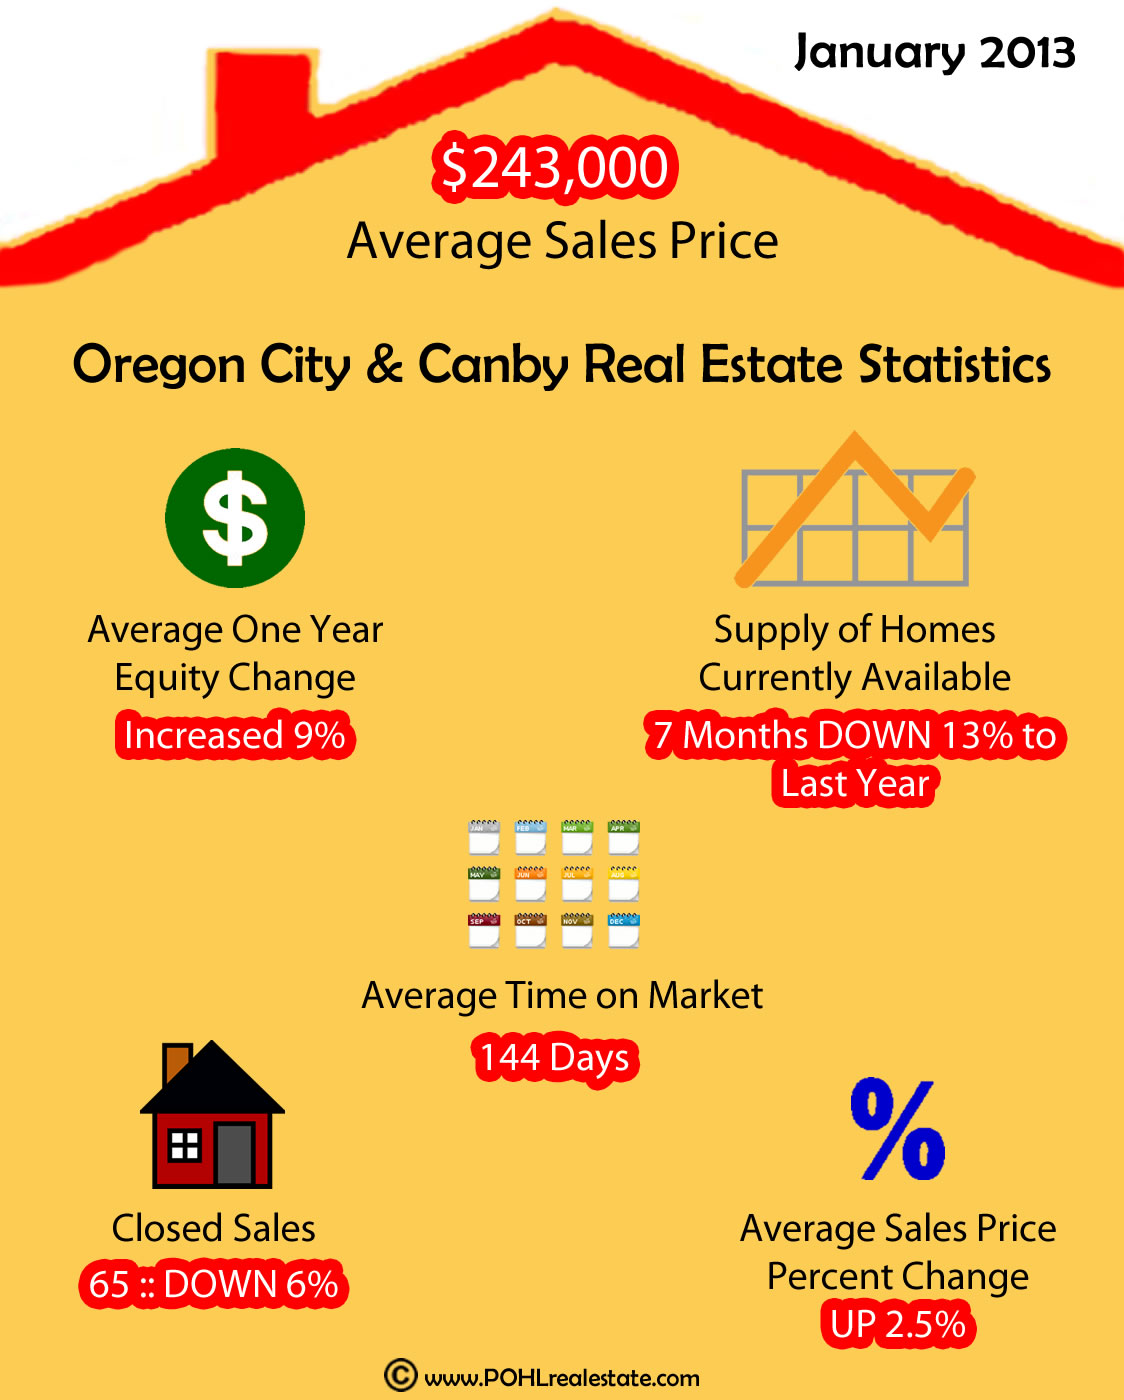 Oregon City & Canby Stats & Review Ending January 2013